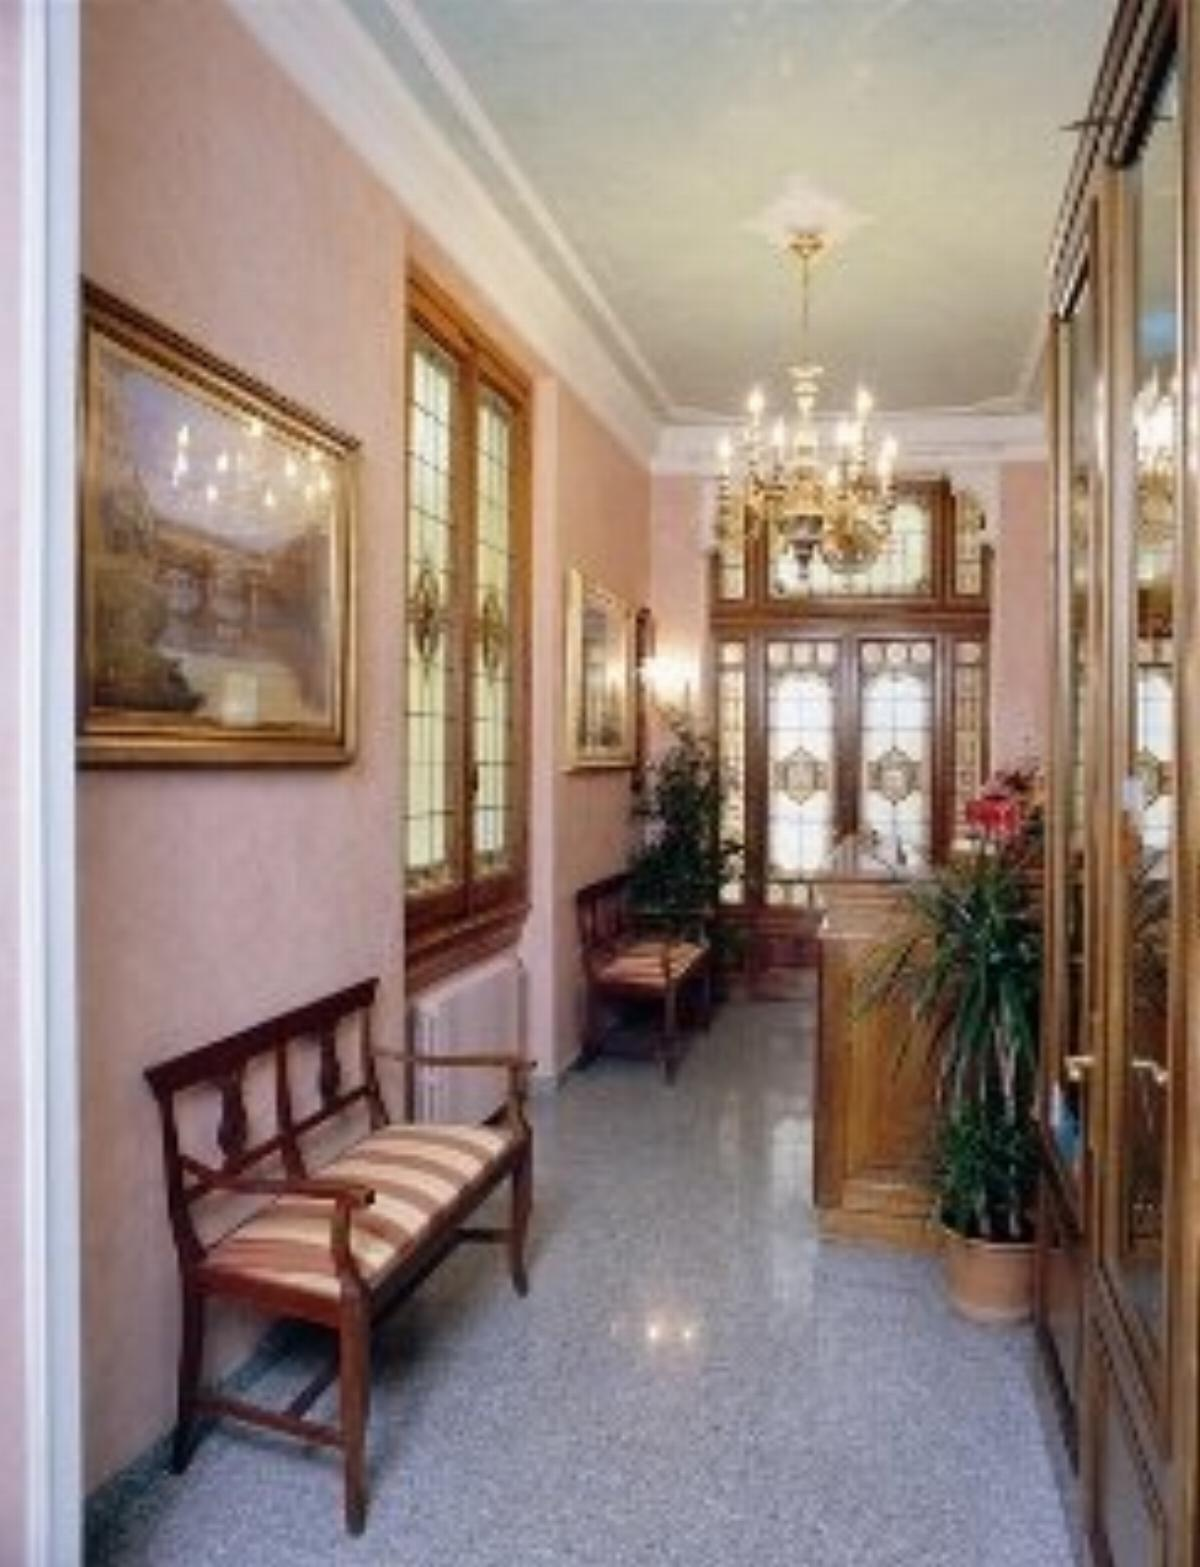 Hotel Desiree Hotel, Florence, Italy - overview